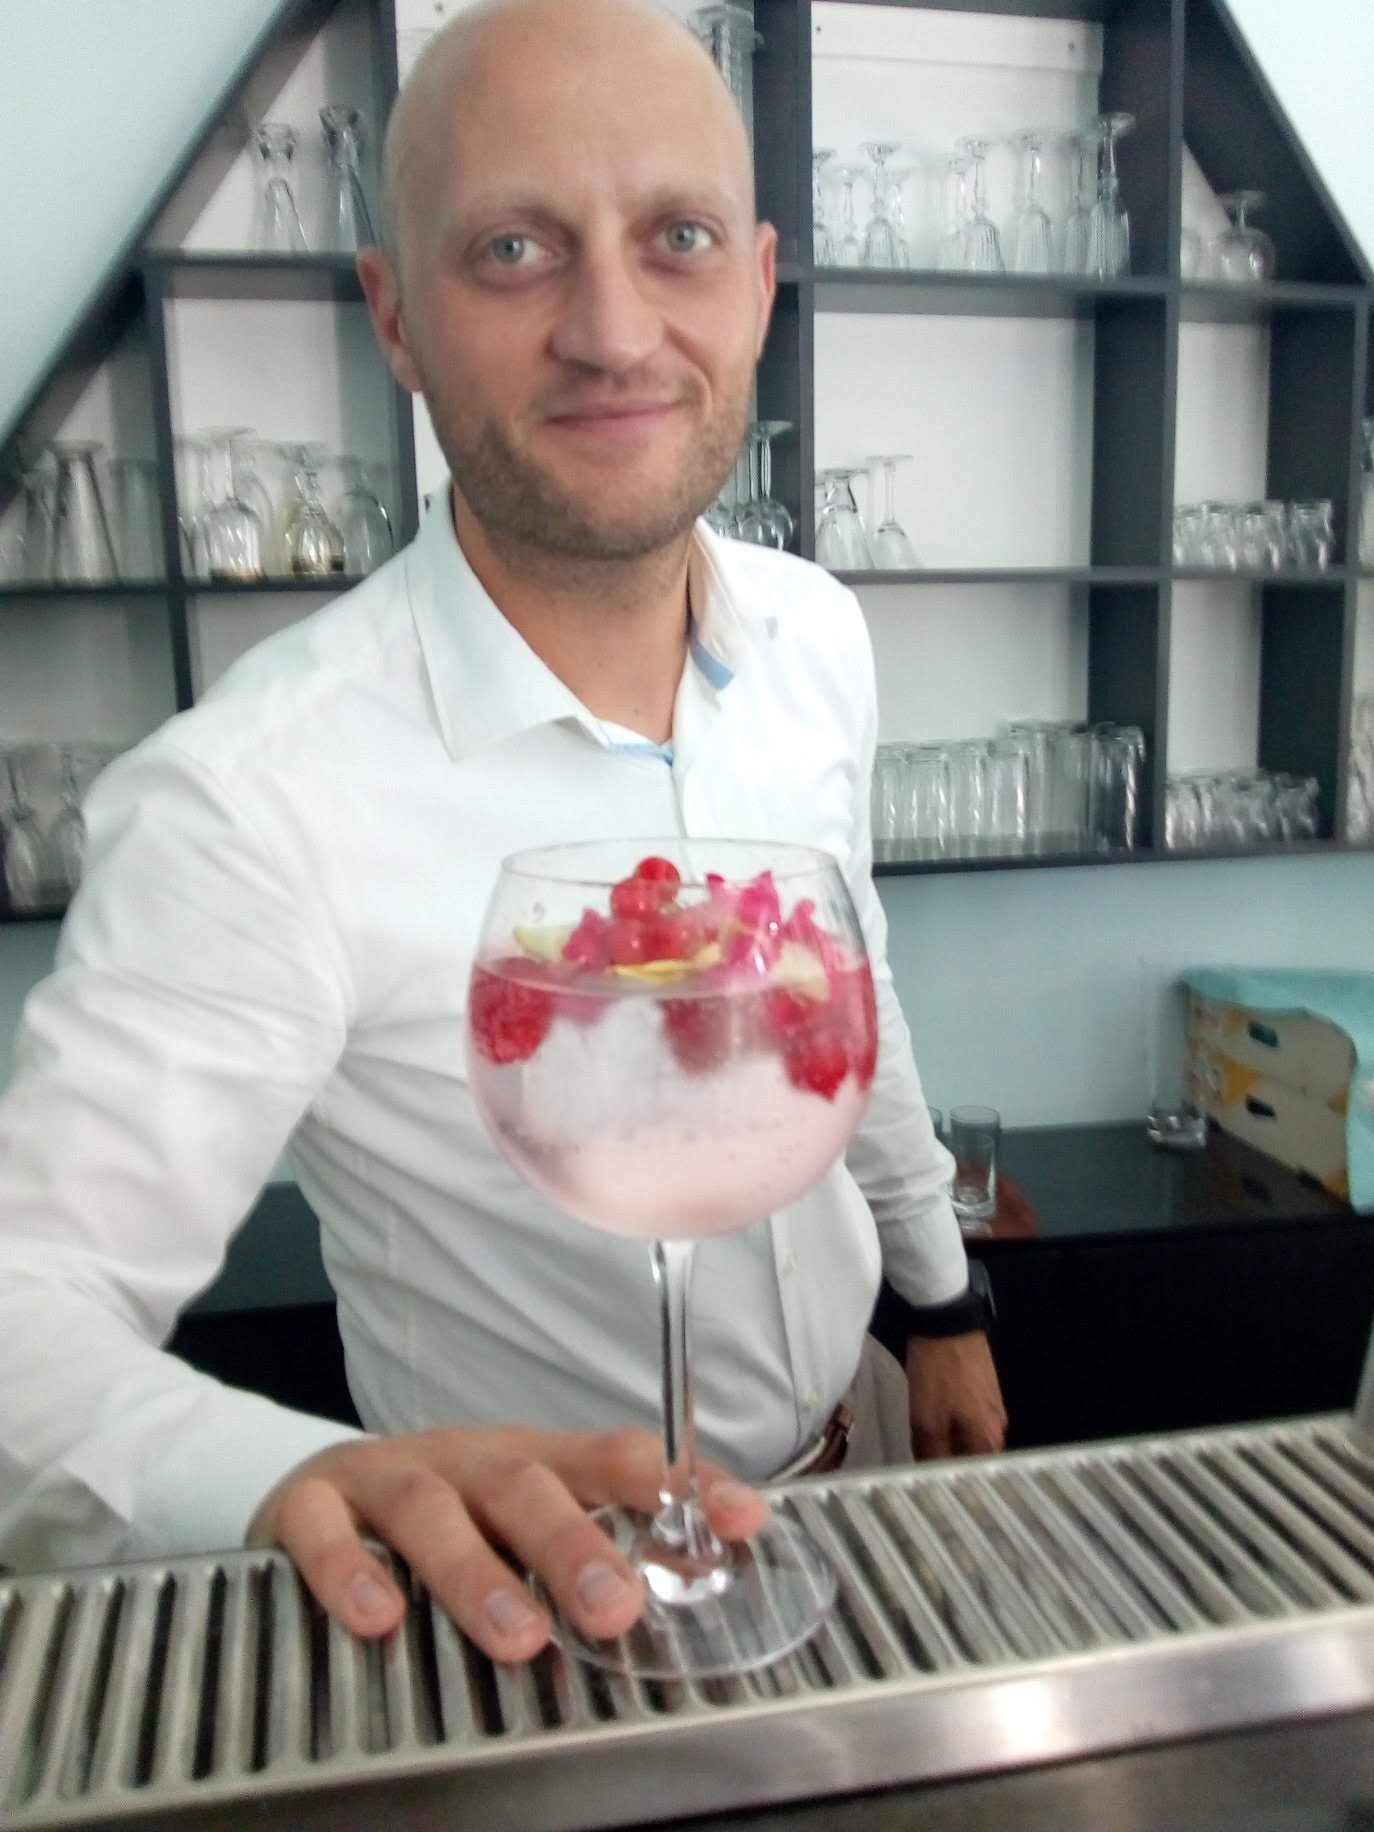 ST. NICOLAUS YOUNG BARTENDERS TALENT - Obrázok 5